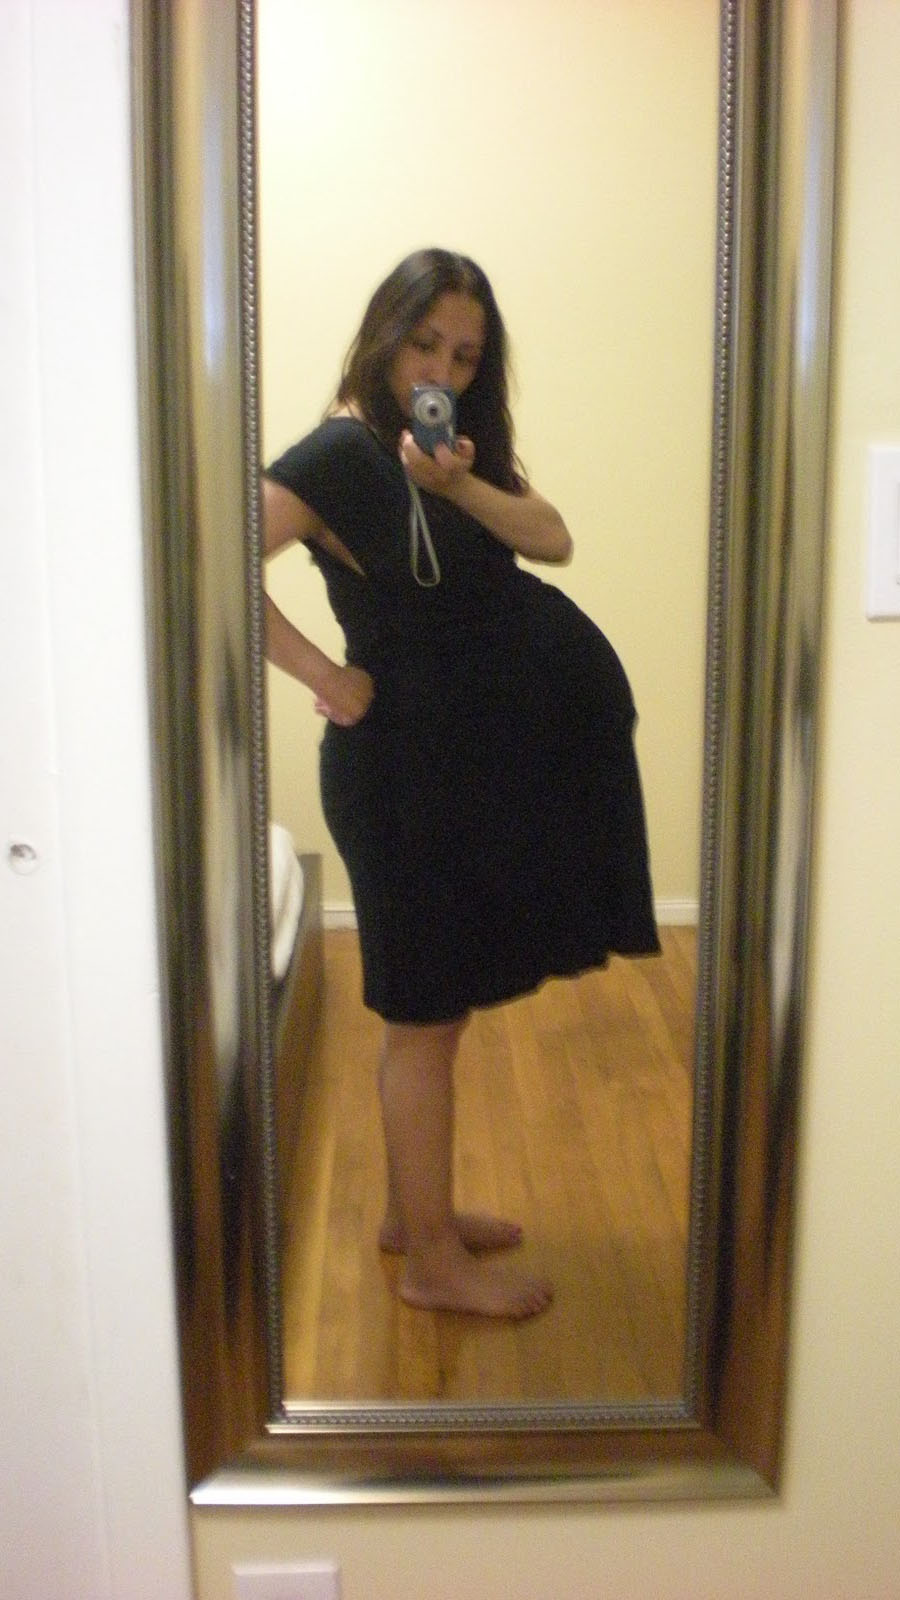 How big is a twin belly at 35 weeks?